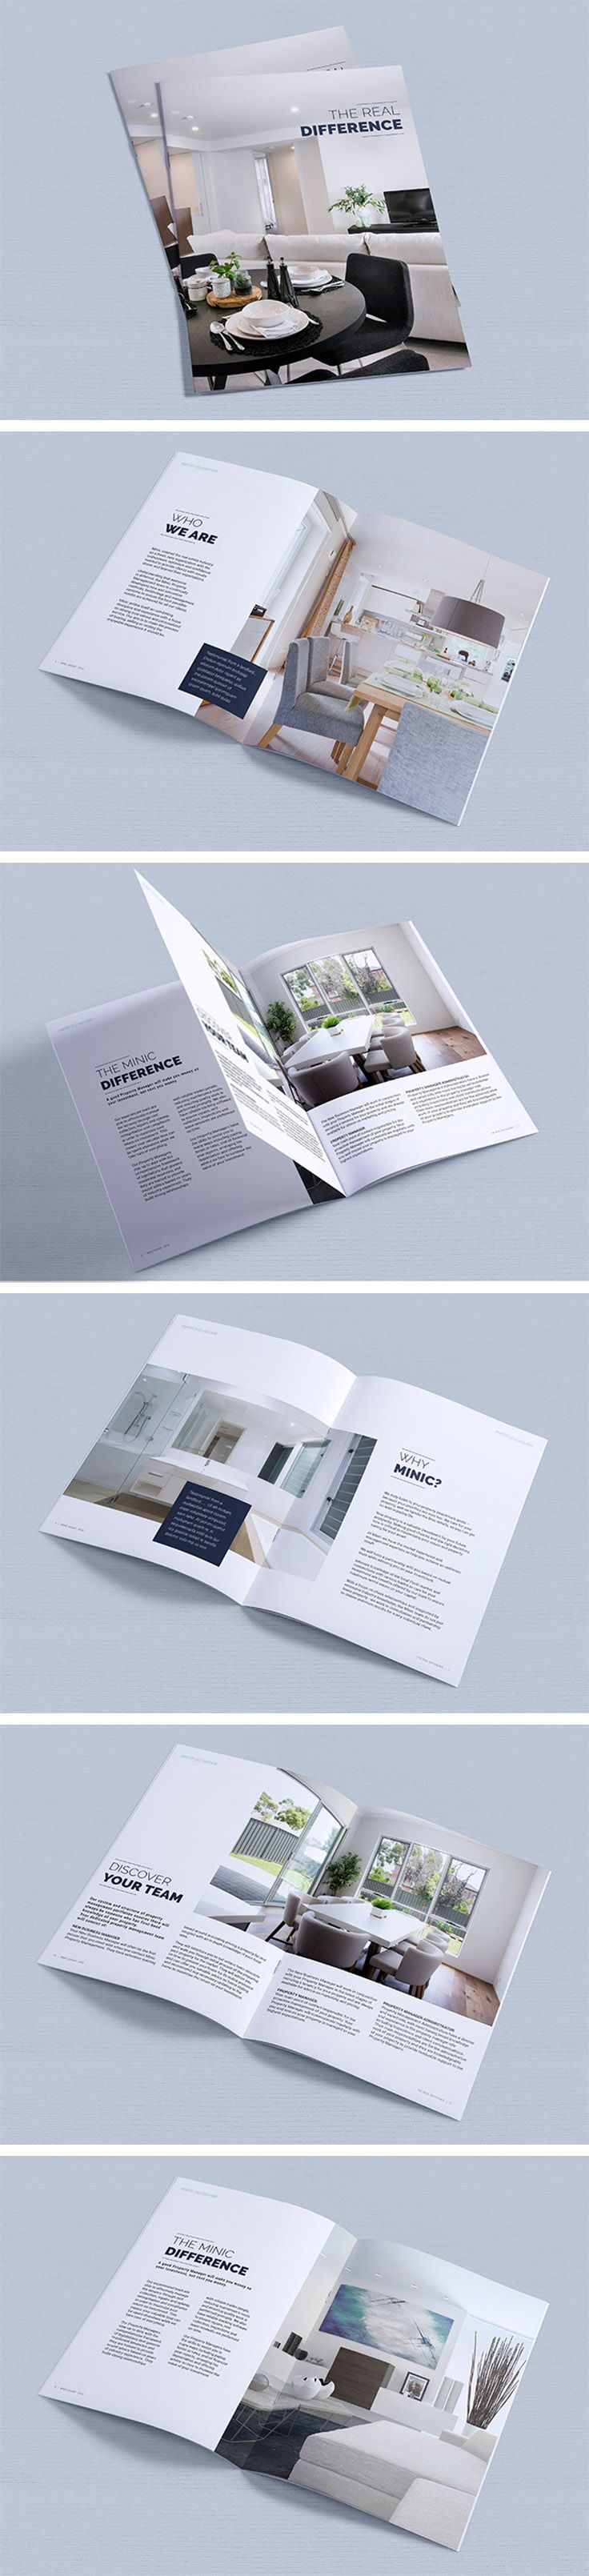 Graphic Design Brochure, Real Estate booklet, magazine layout A4 | grid, pamphlet, property development, minimalist